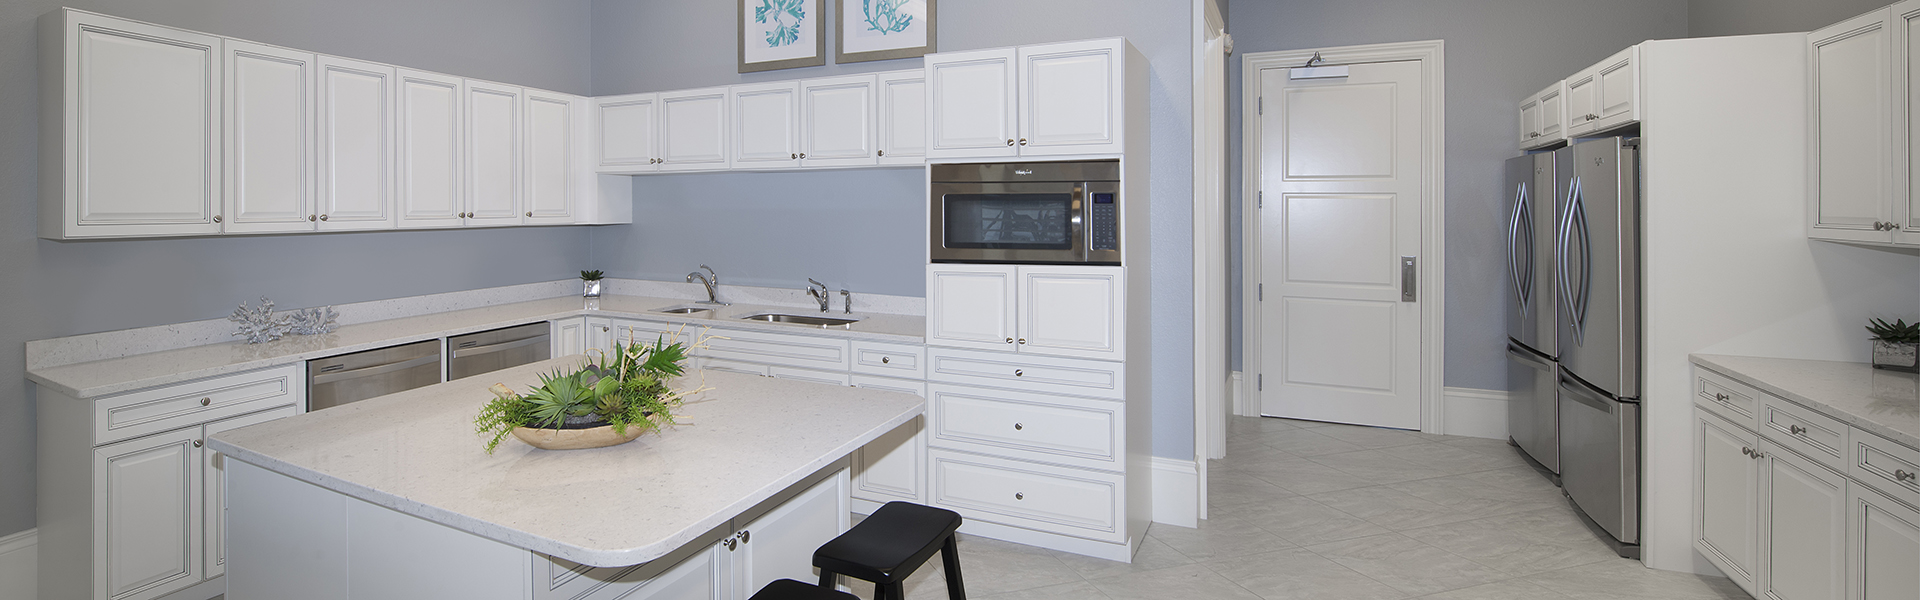 12-Catering Kitchen